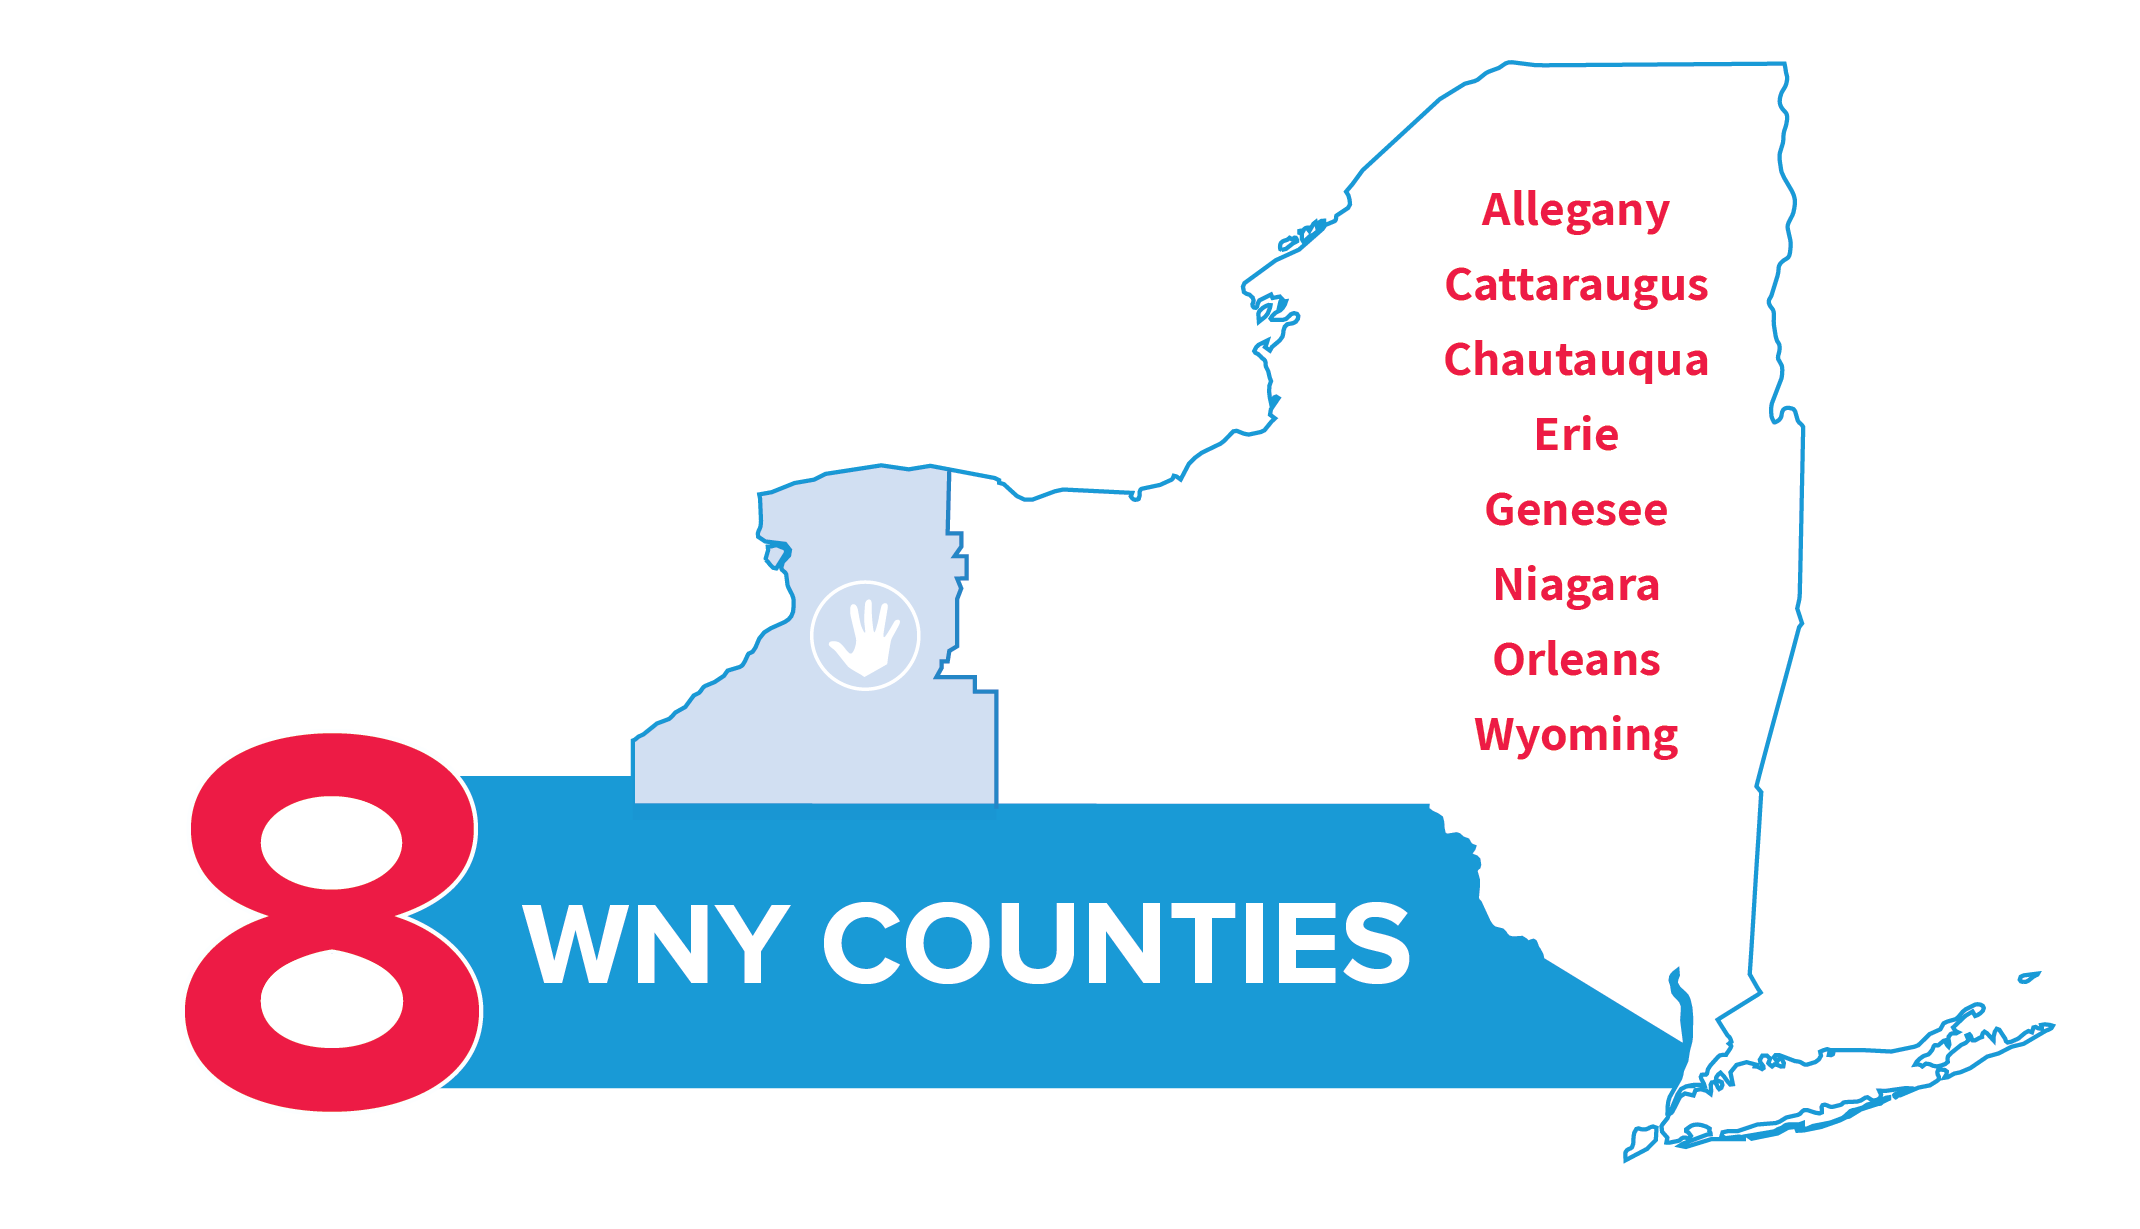 8 counties Parent Network of WNY operates in - Allegany, Cattaraugus, Chautauqua, Erie, Genesee, Niagara, Orleans, and Wyoming